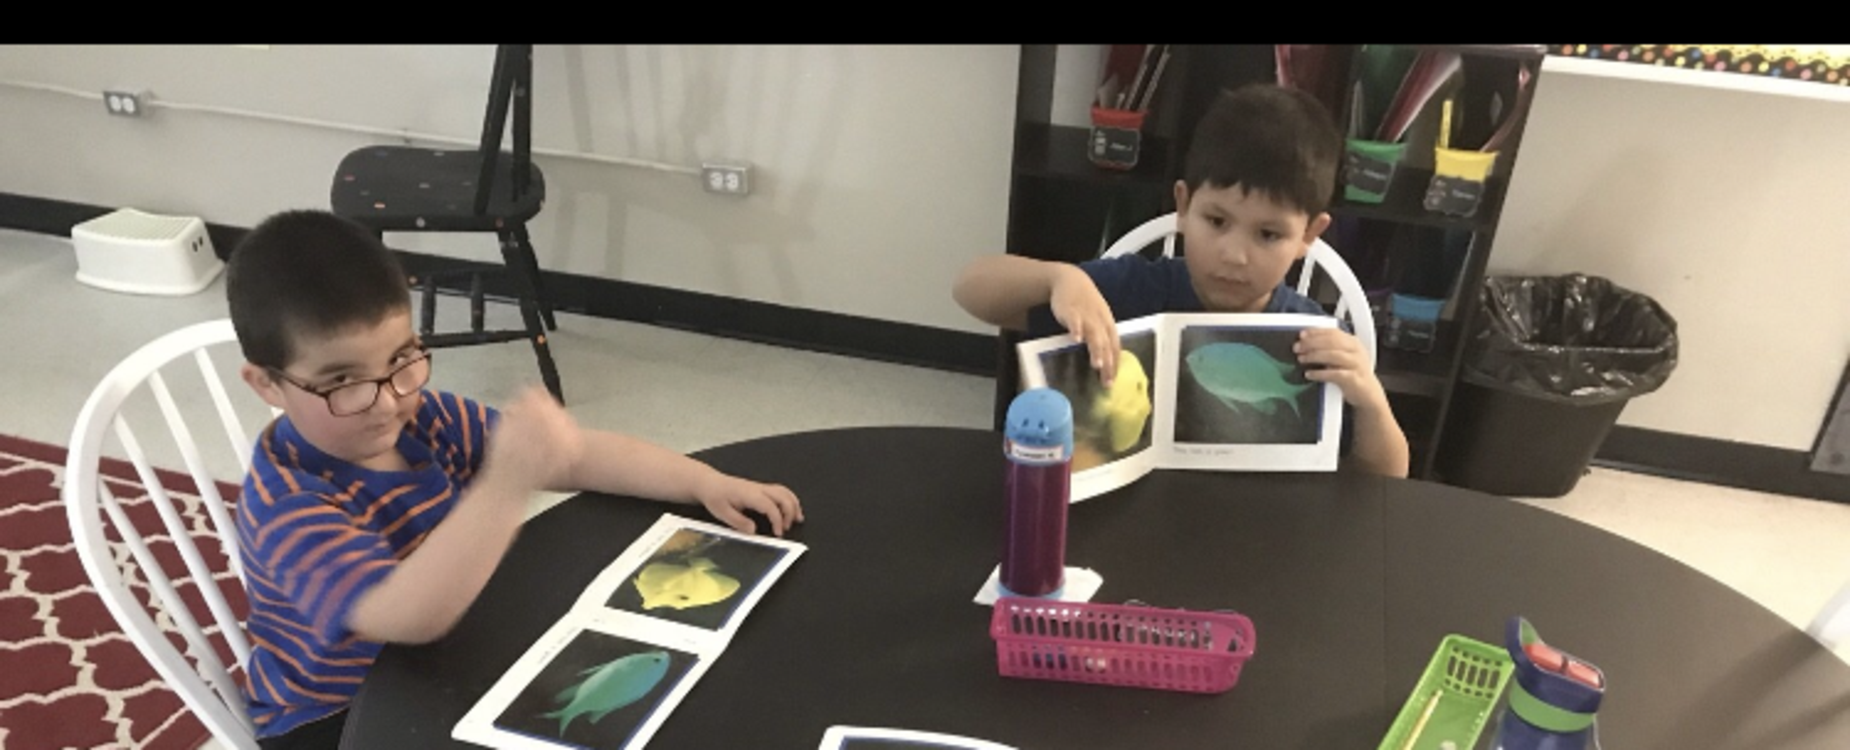 boys reading books with pictures of fish